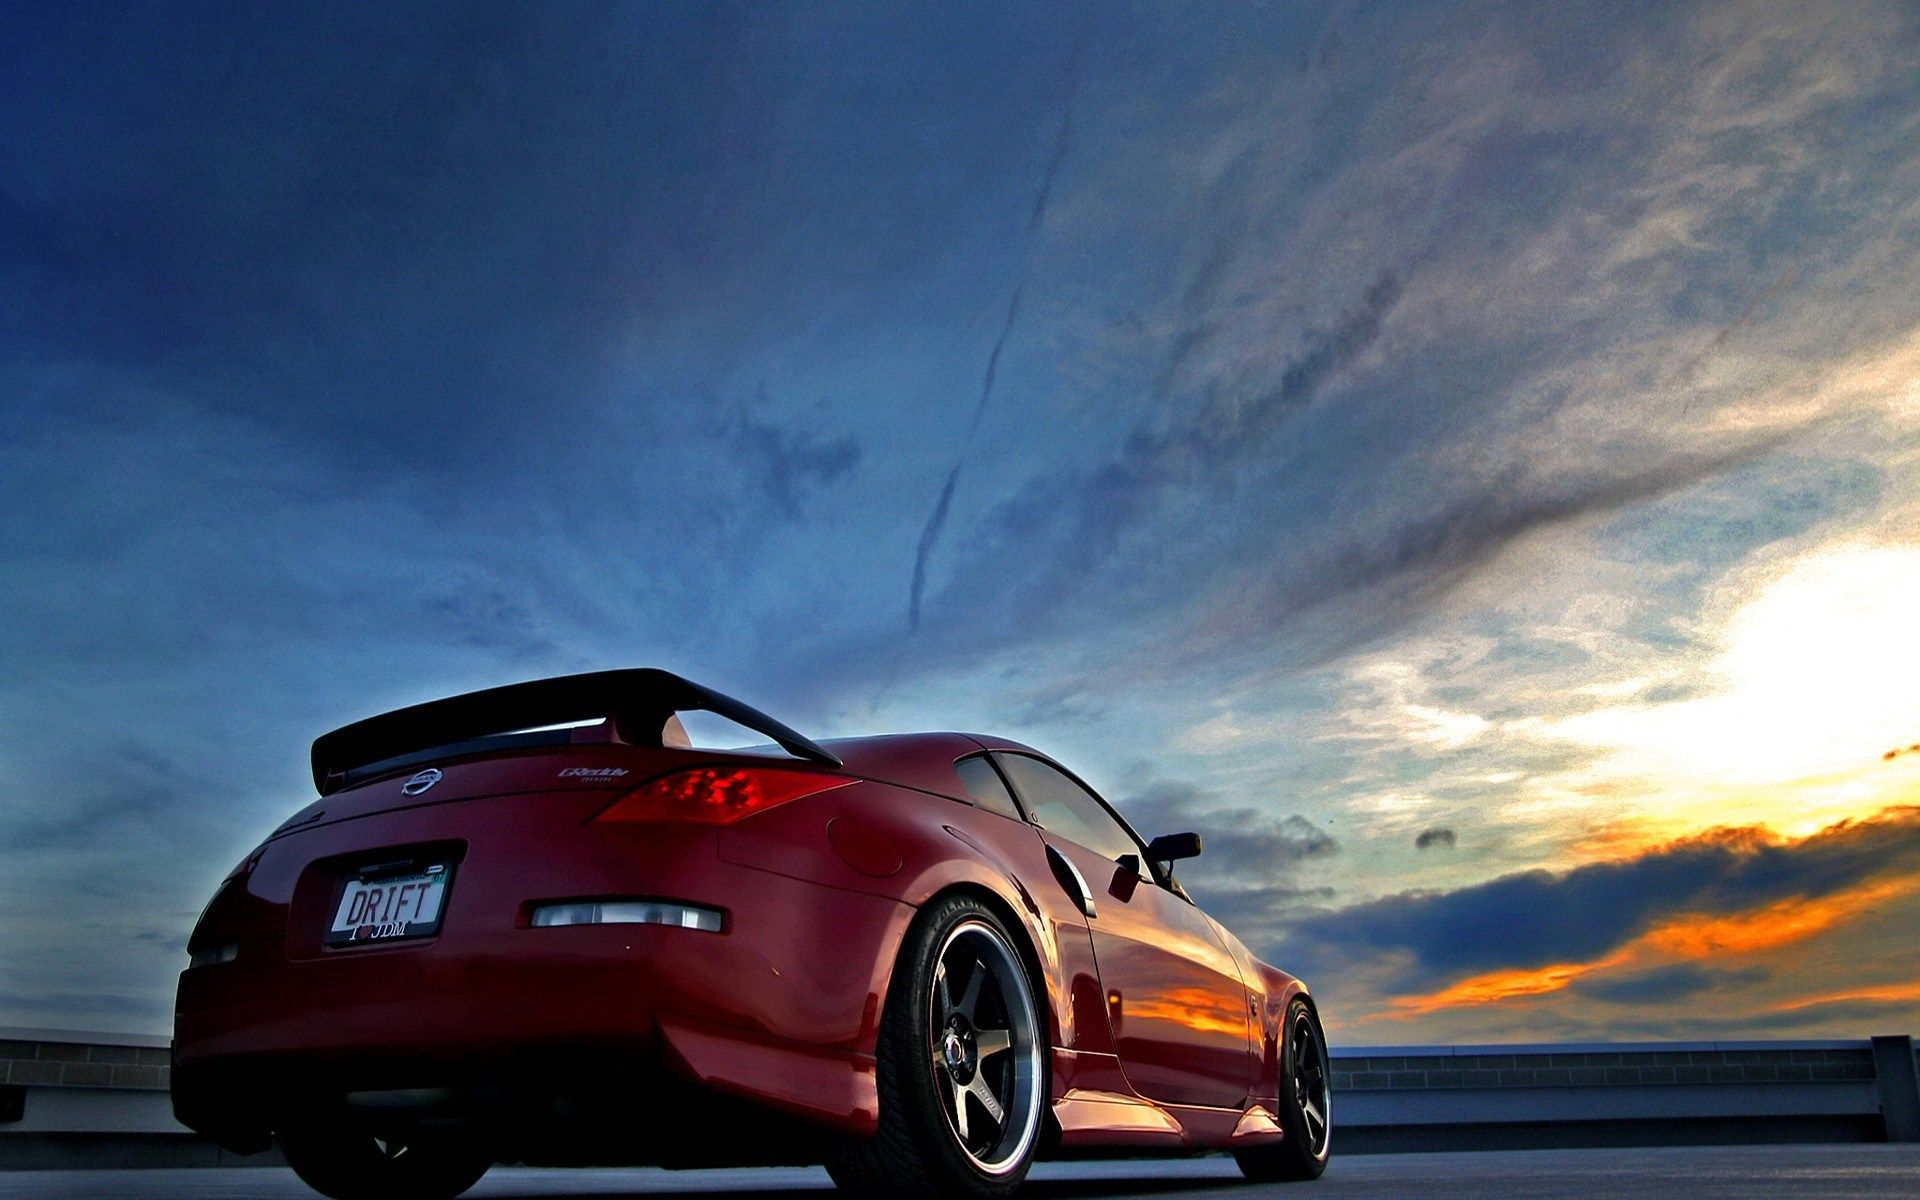 Jdm nissan 350 z wallpaper with drift license plates for